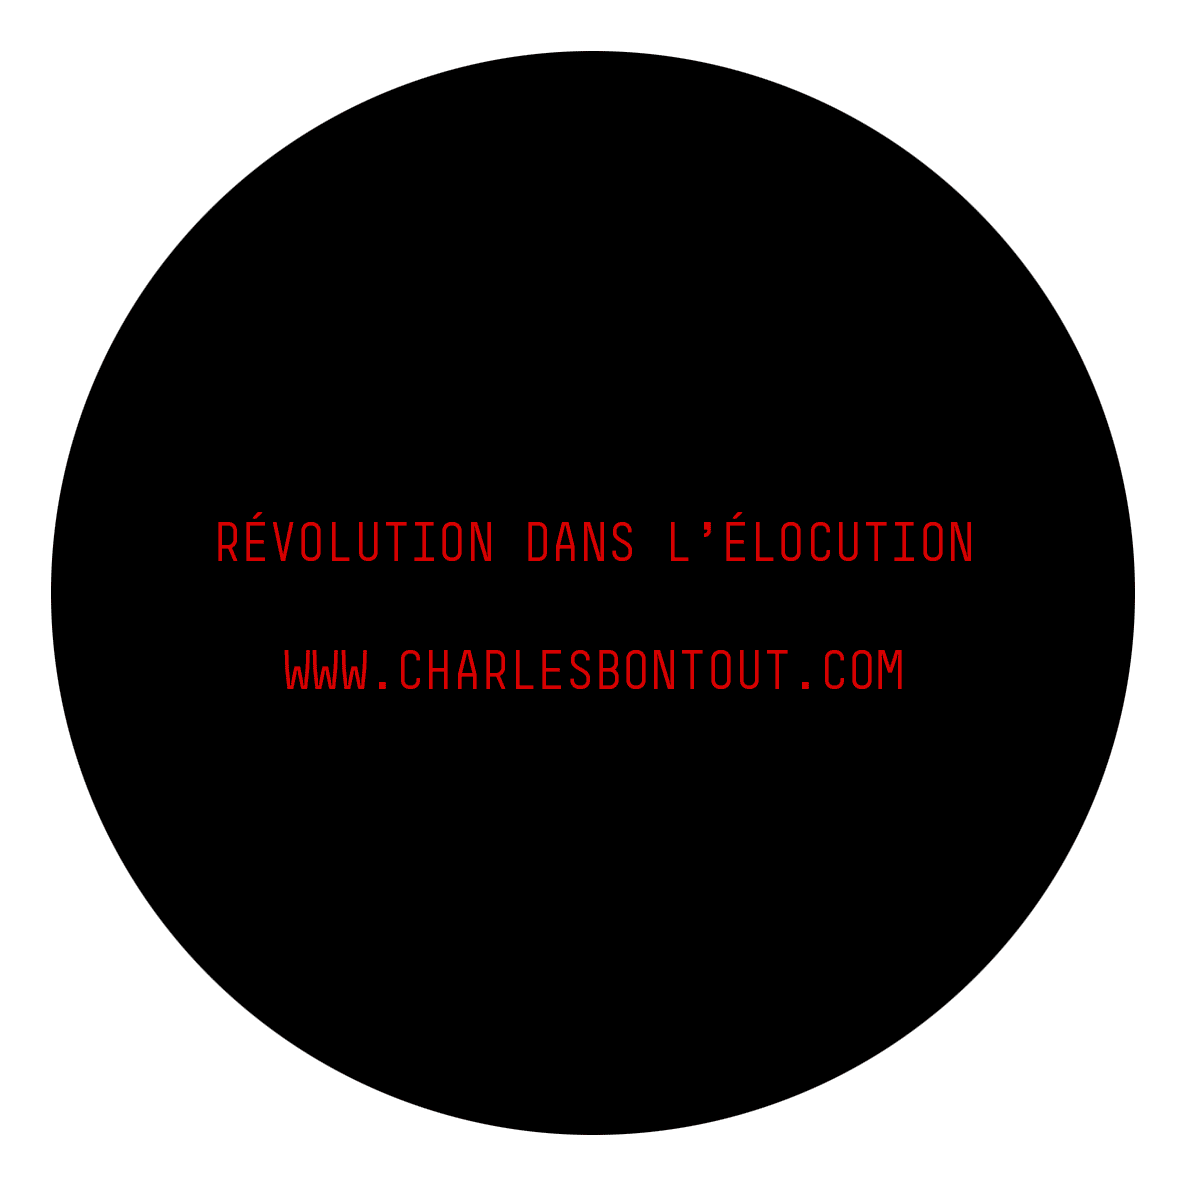 website_charles_bontout